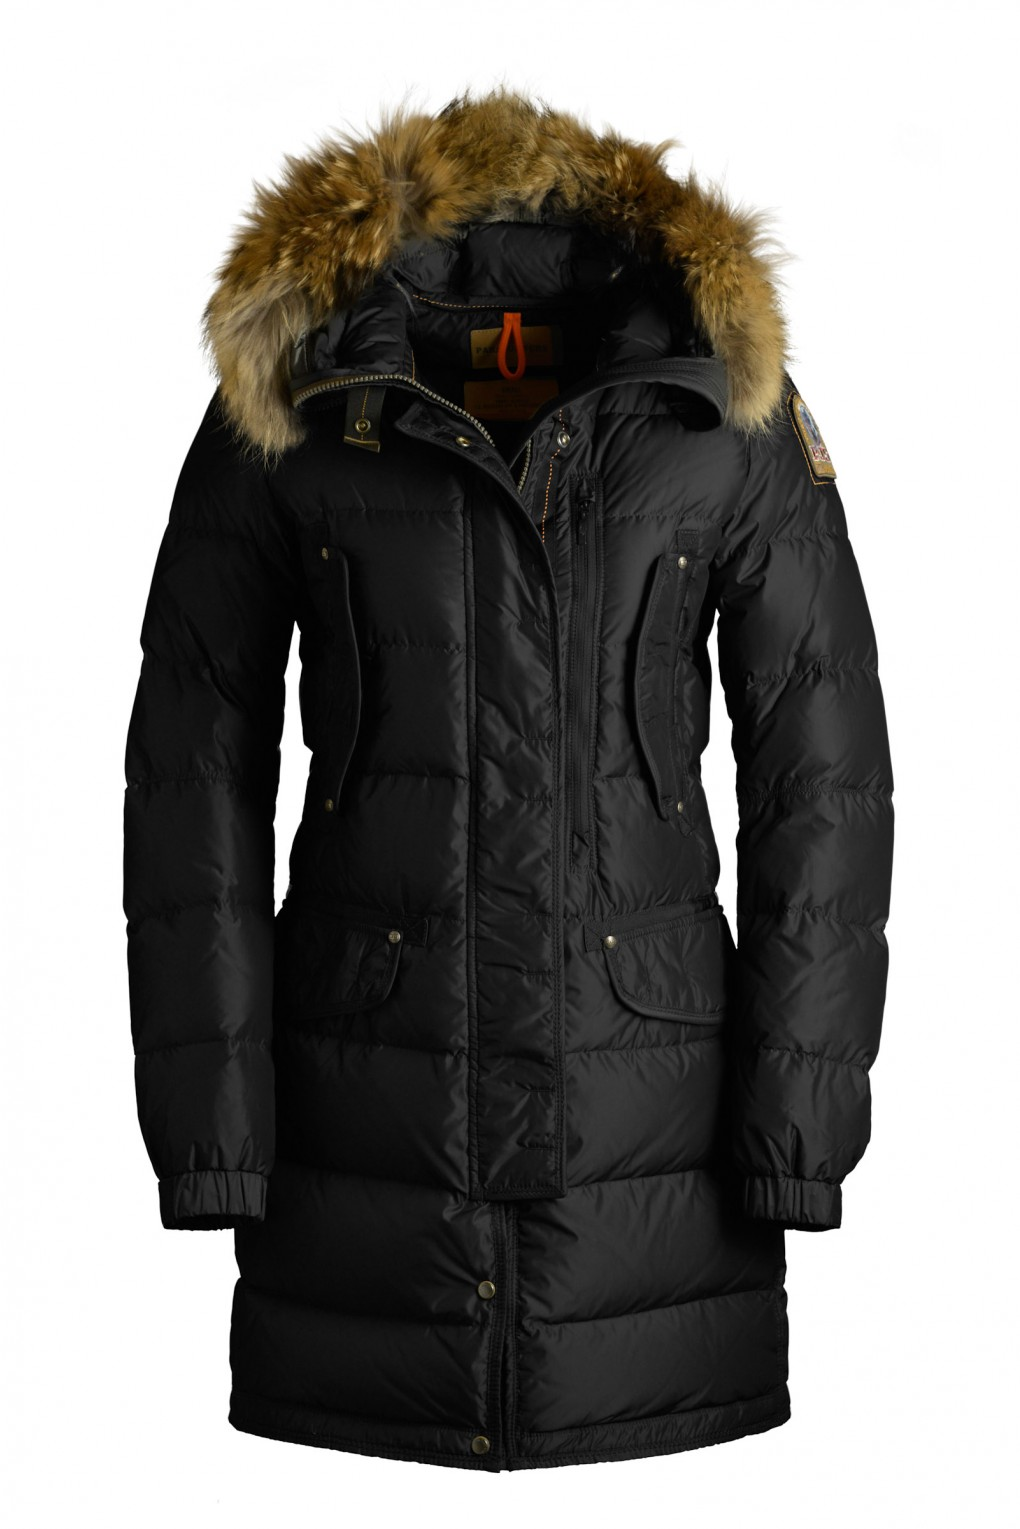 parajumpers HARRASEEKET woman outerwear Black